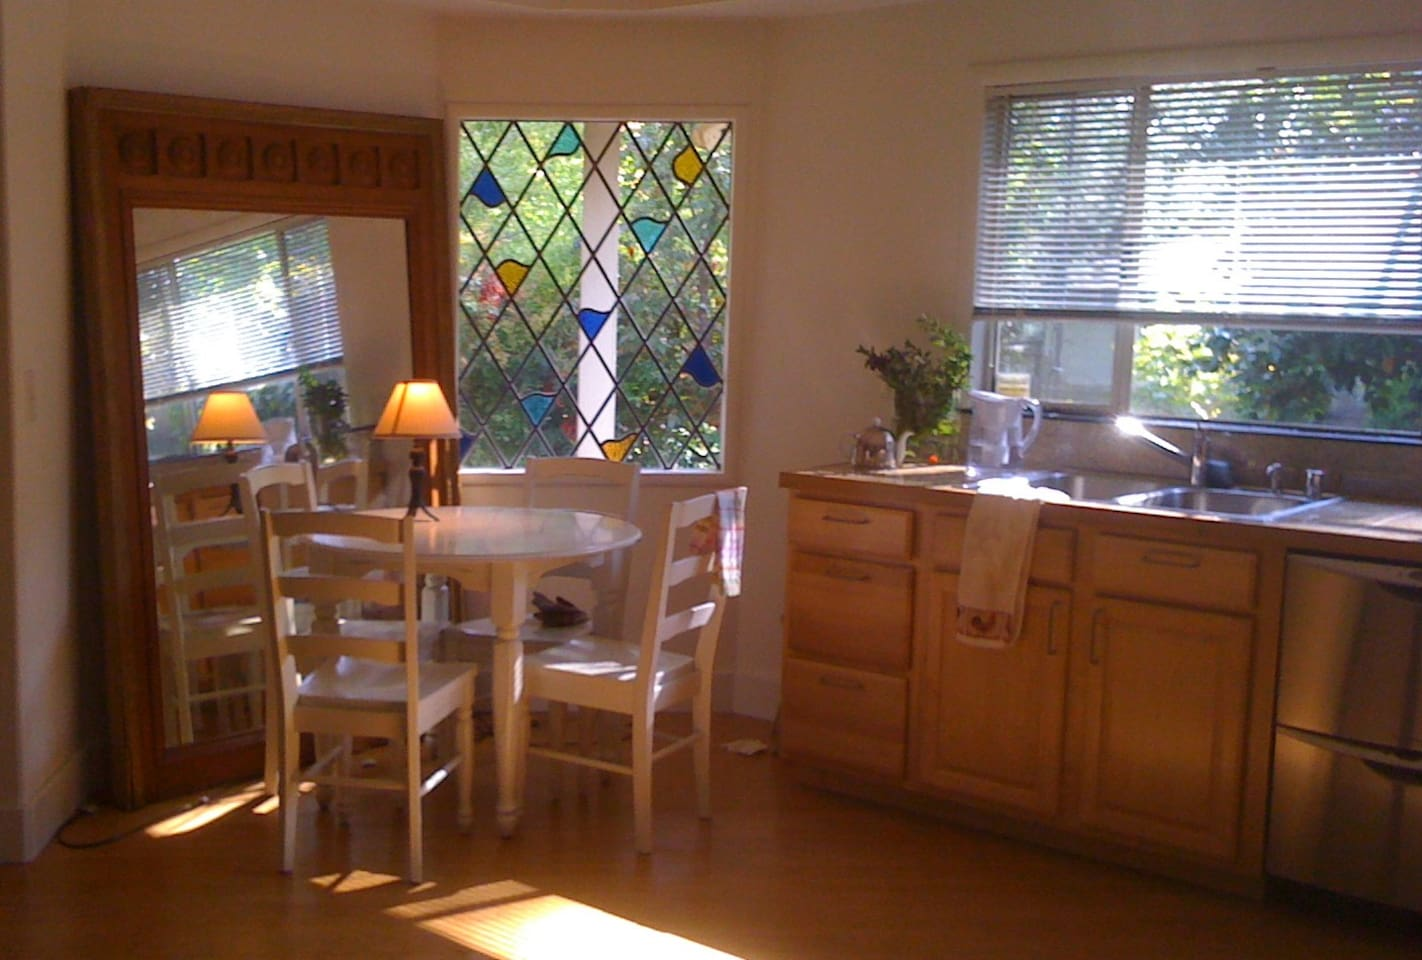 the European style kitchen with small dining table is part of the part of the large loft-like space